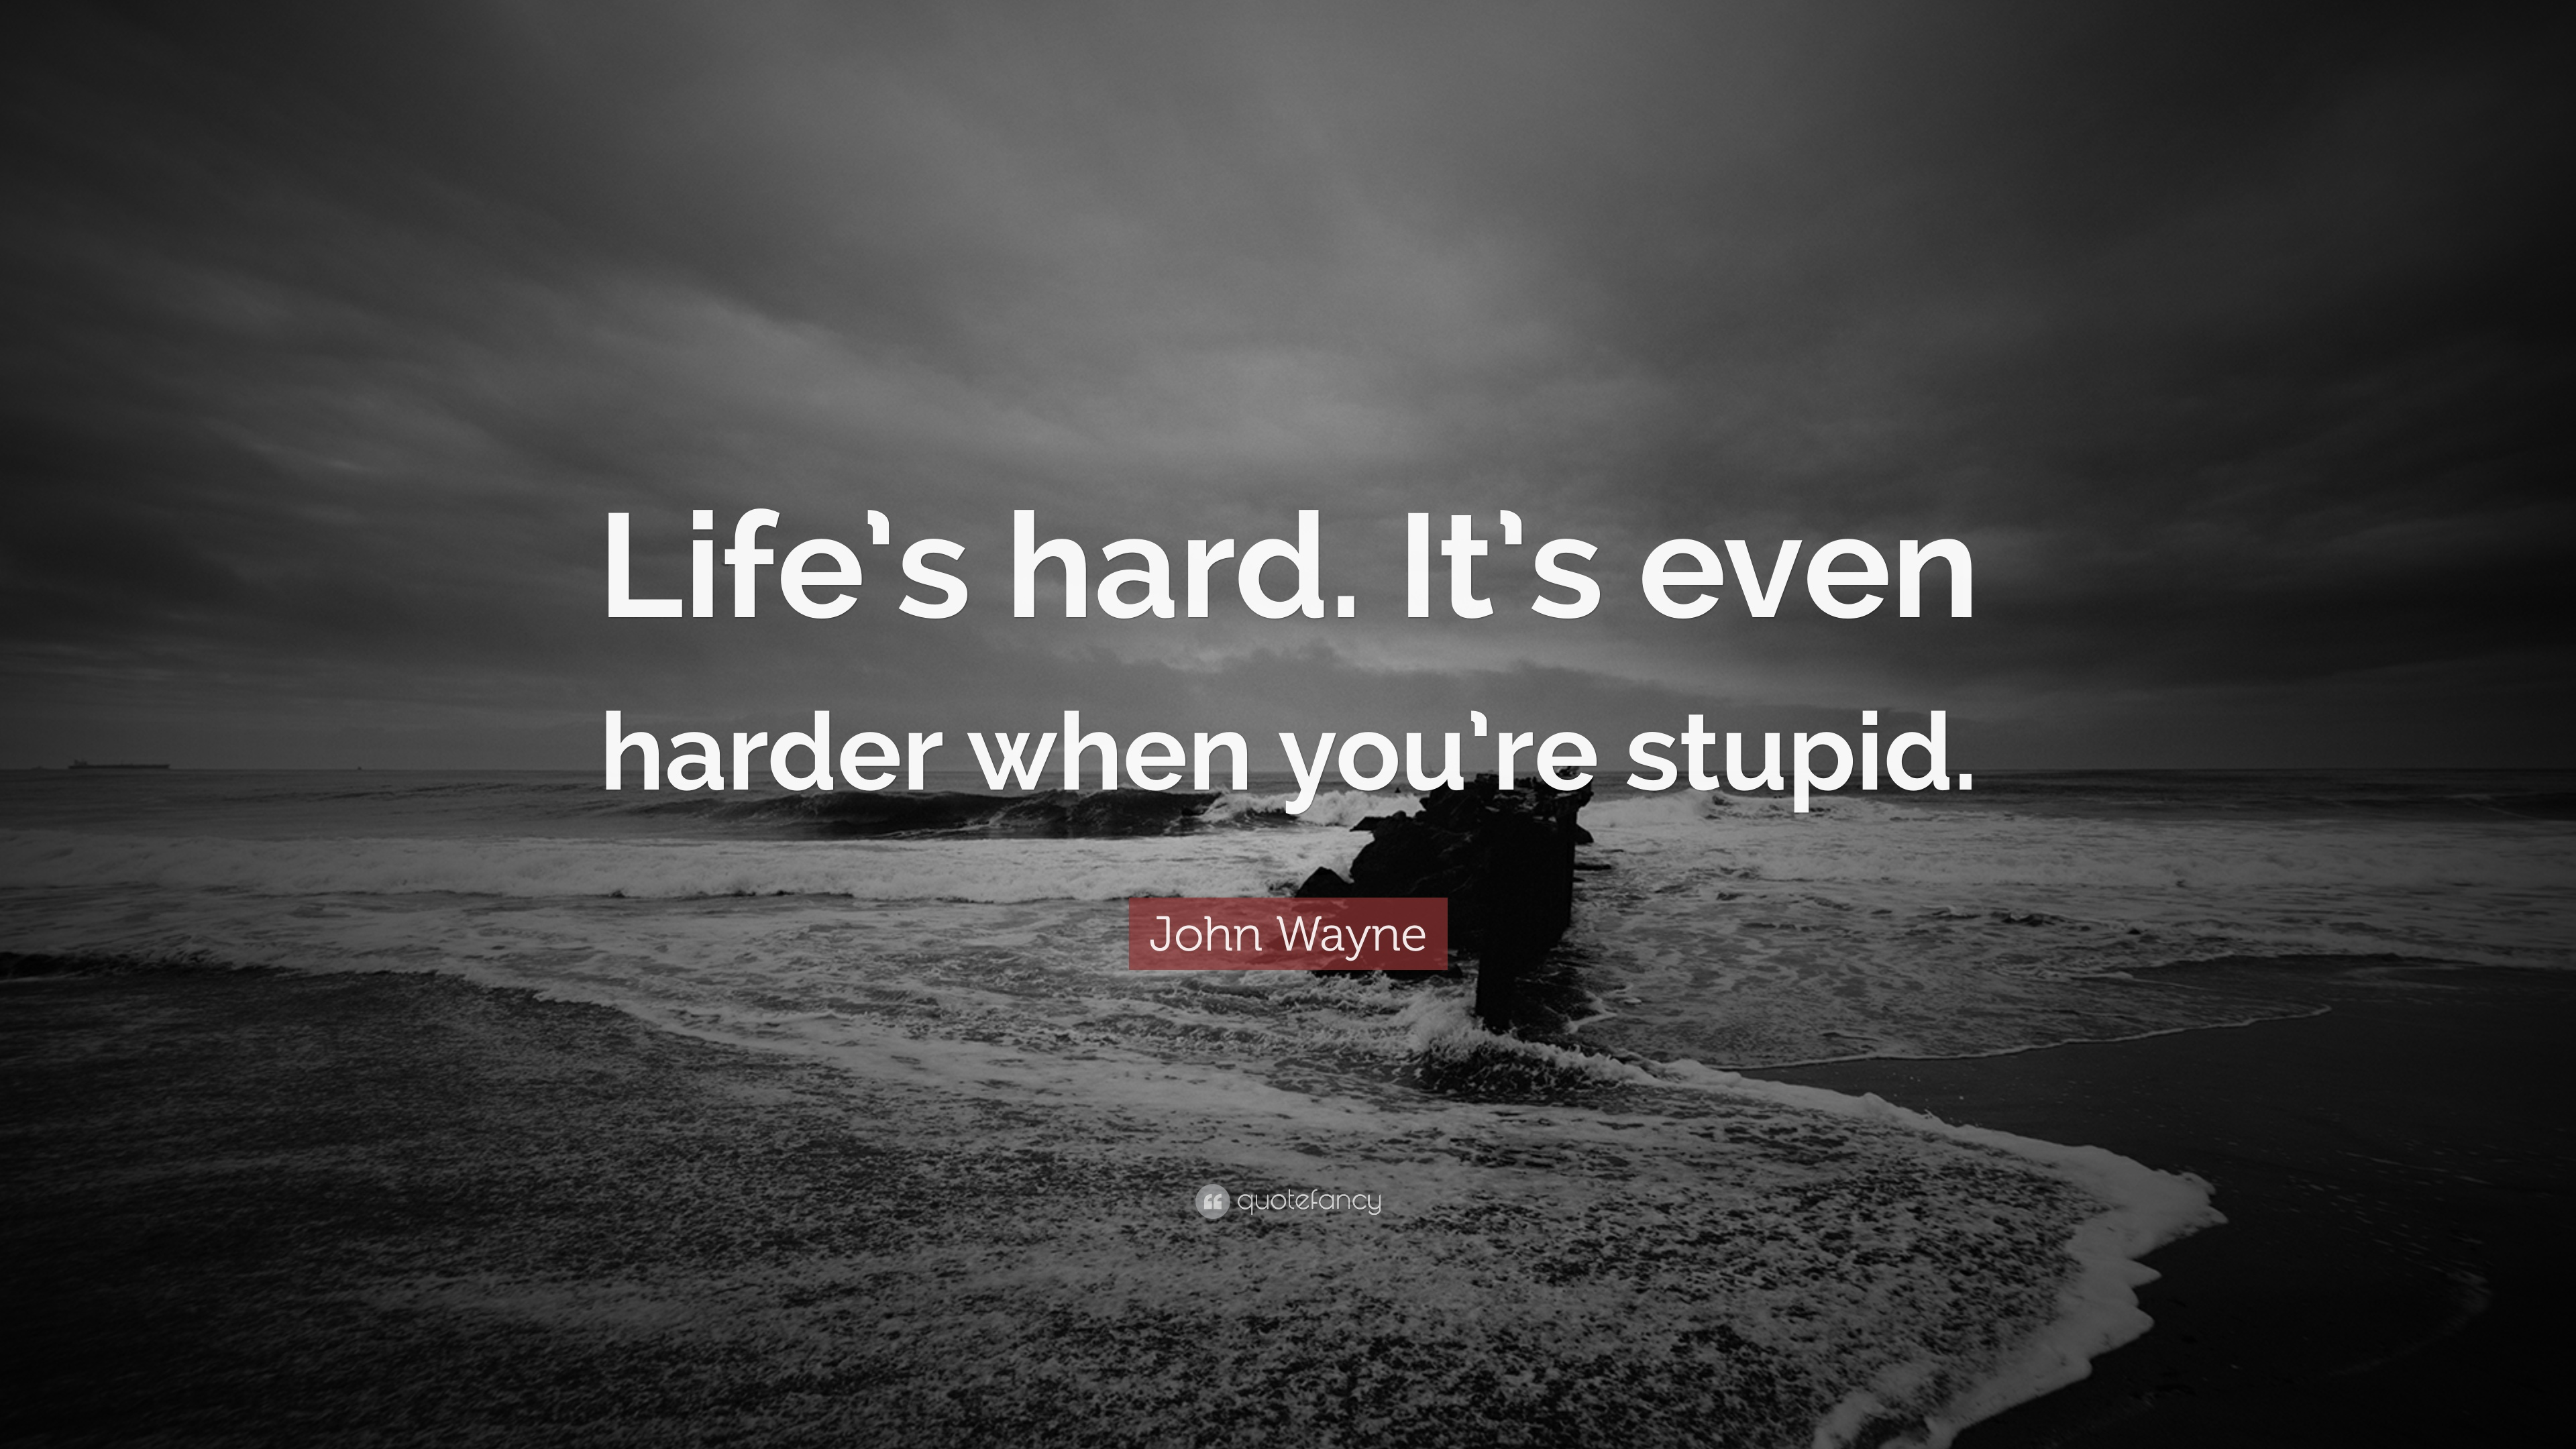 Beautiful John Wayne Quote: U201cLifeu0027s Hard. Itu0027s Even Harder When Youu0027re Stupid